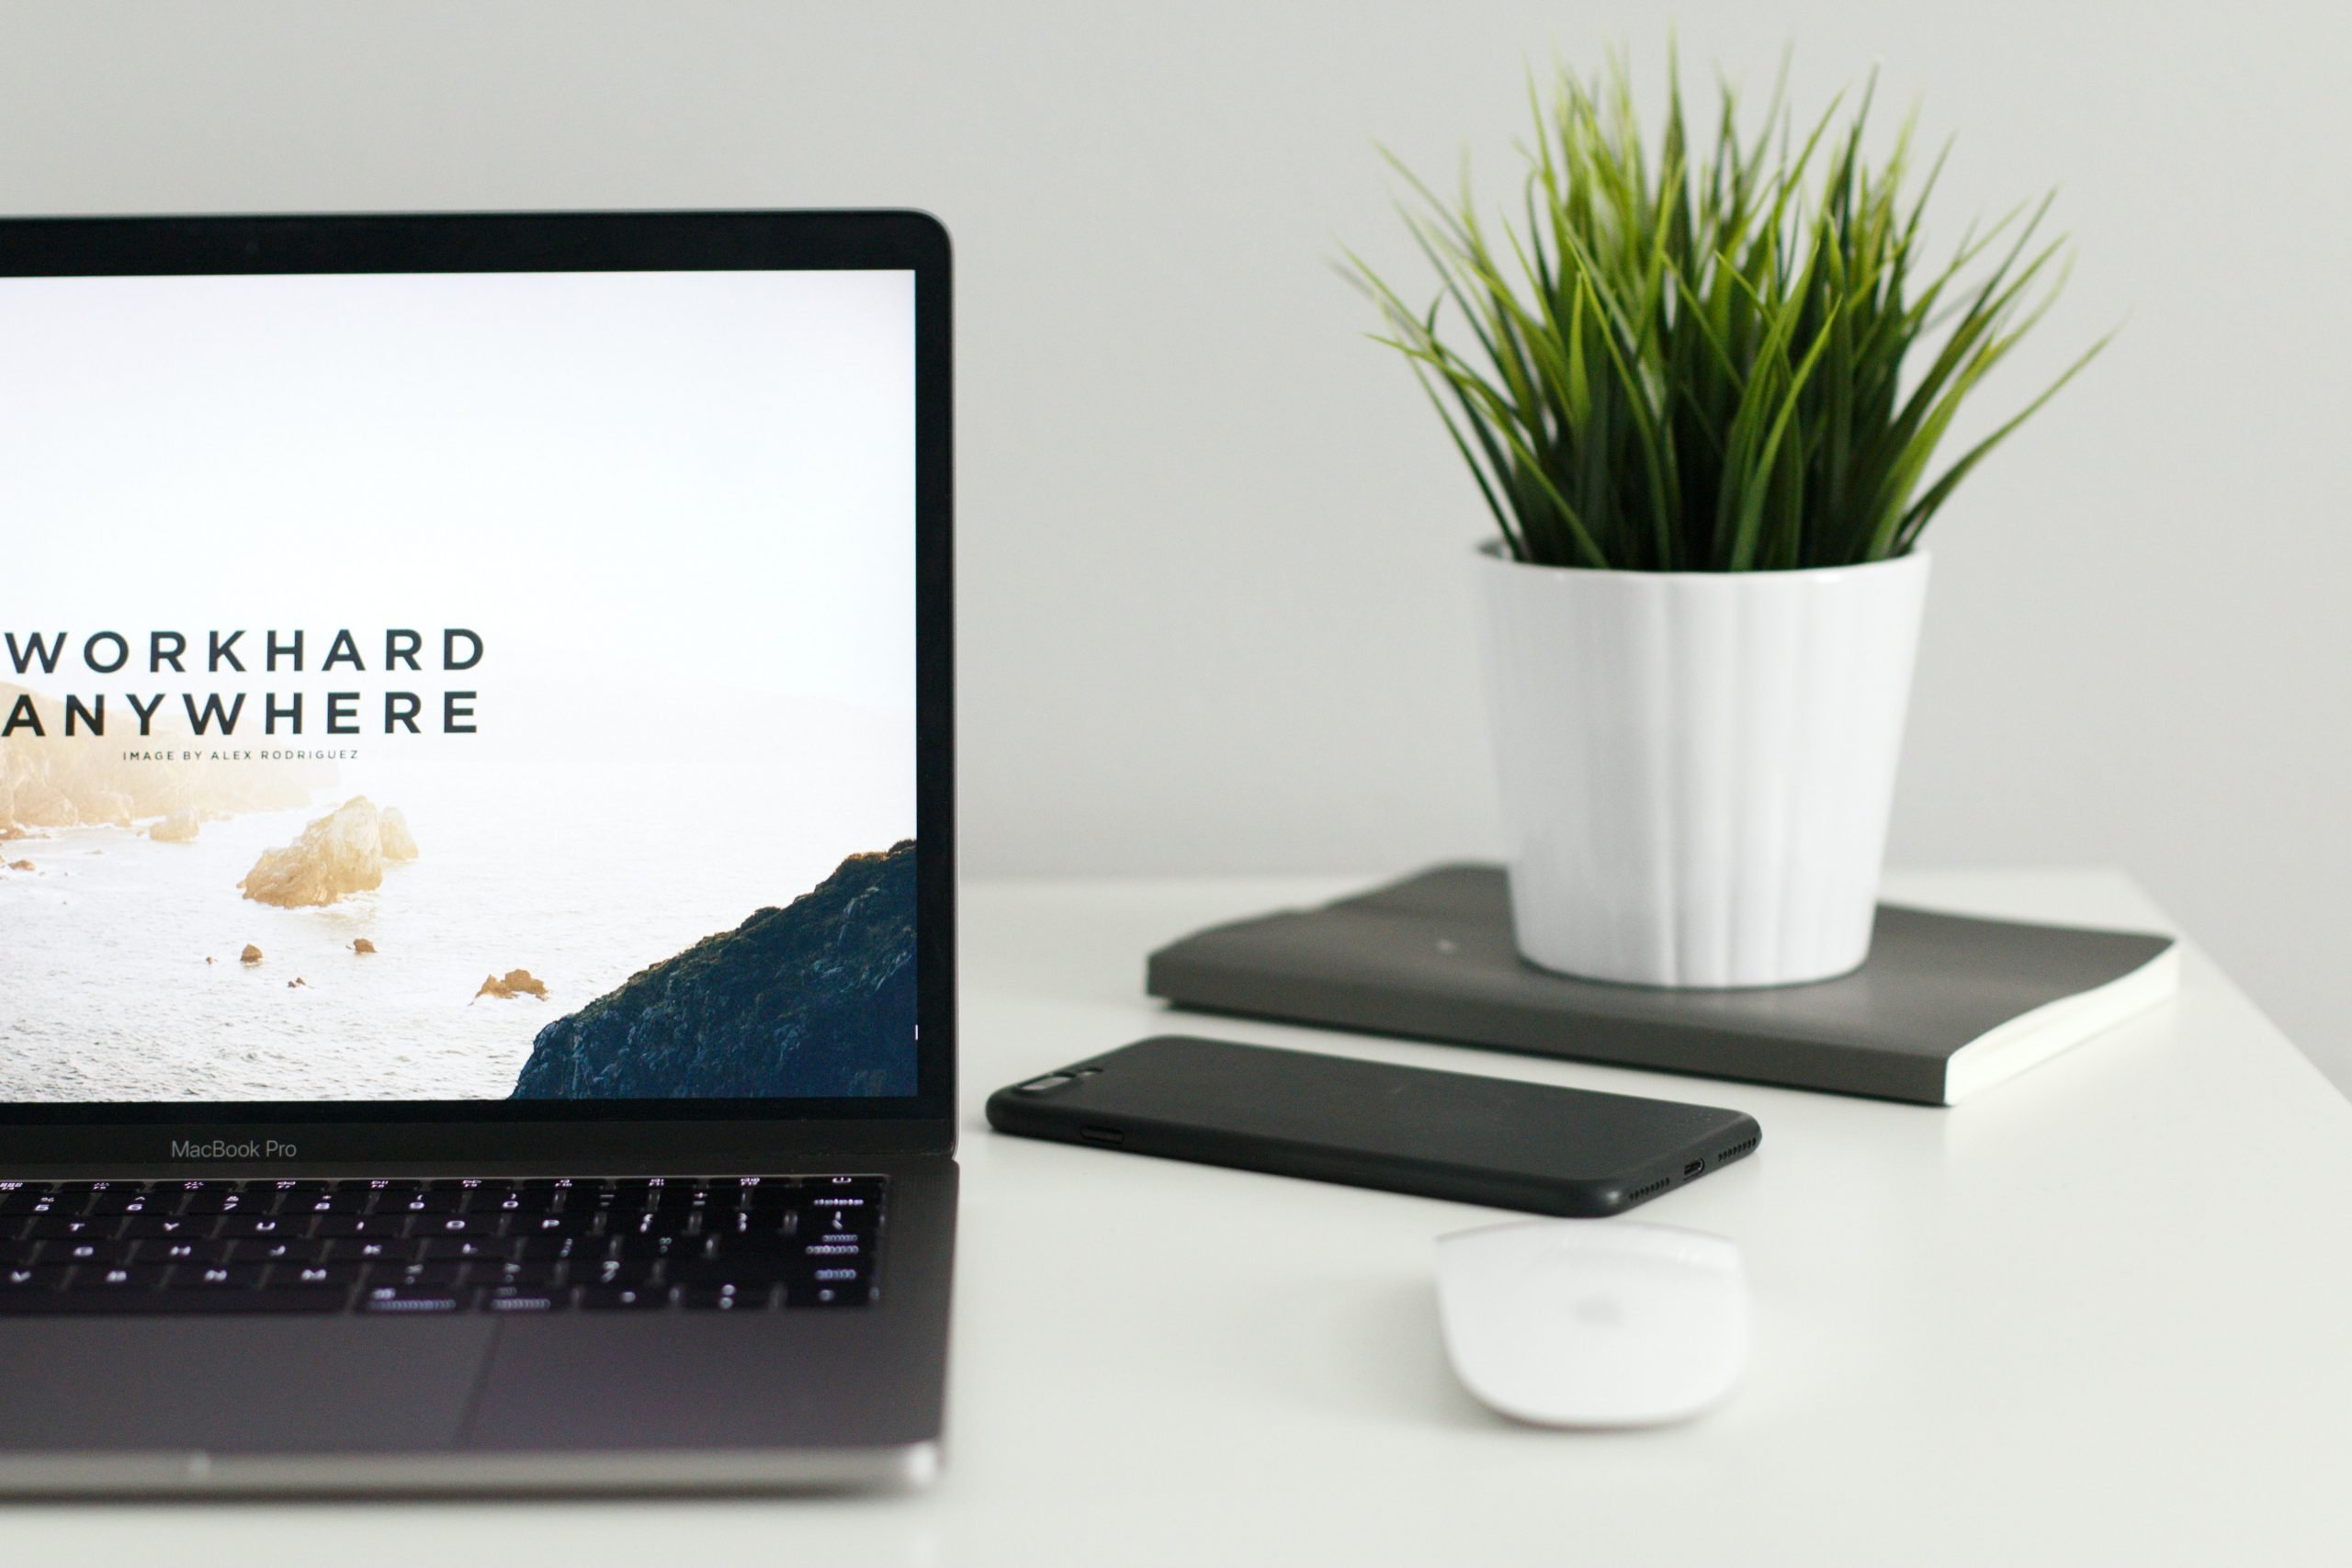 Image of computer monitor that says 'Work hard anywhere' on it.